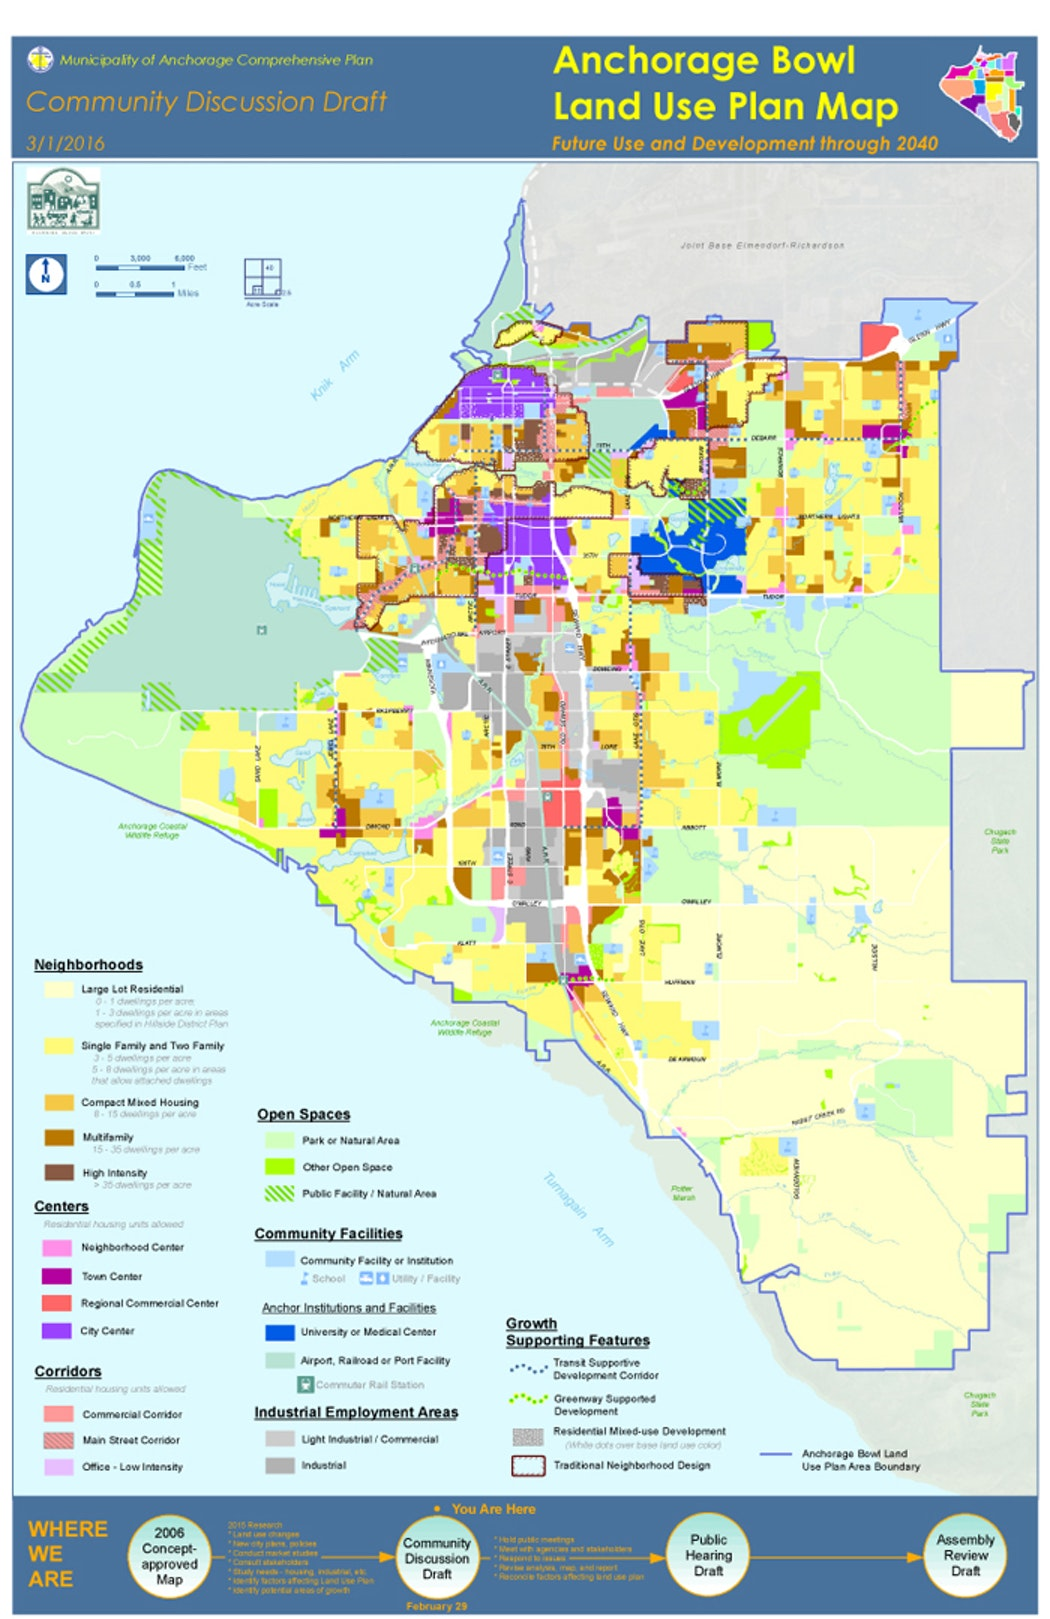 Anchorage's new land use plan map